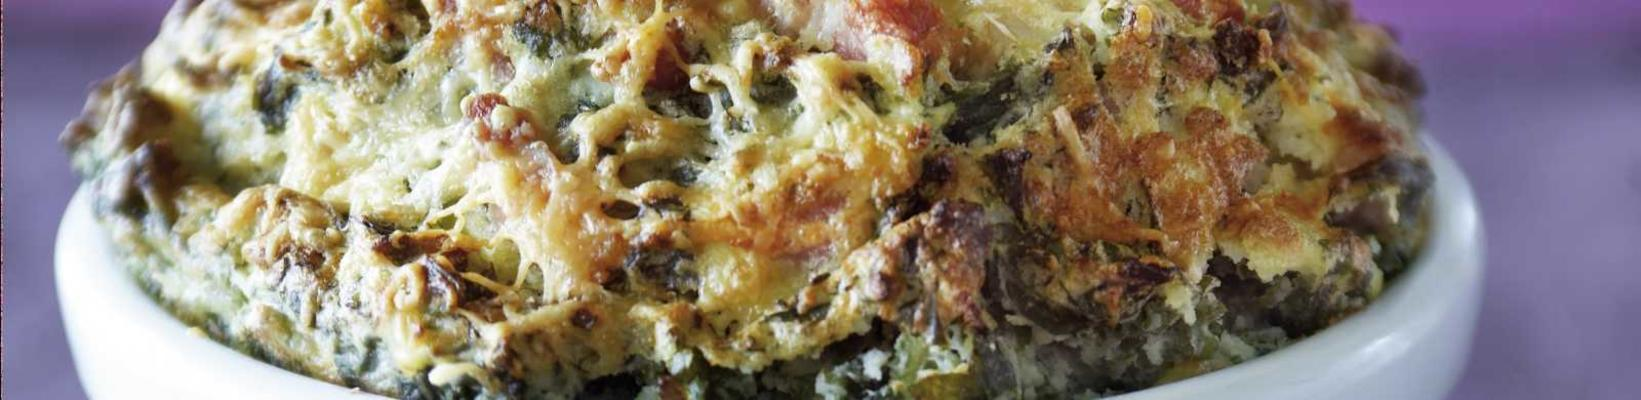 souffle of kale stew and old cheese